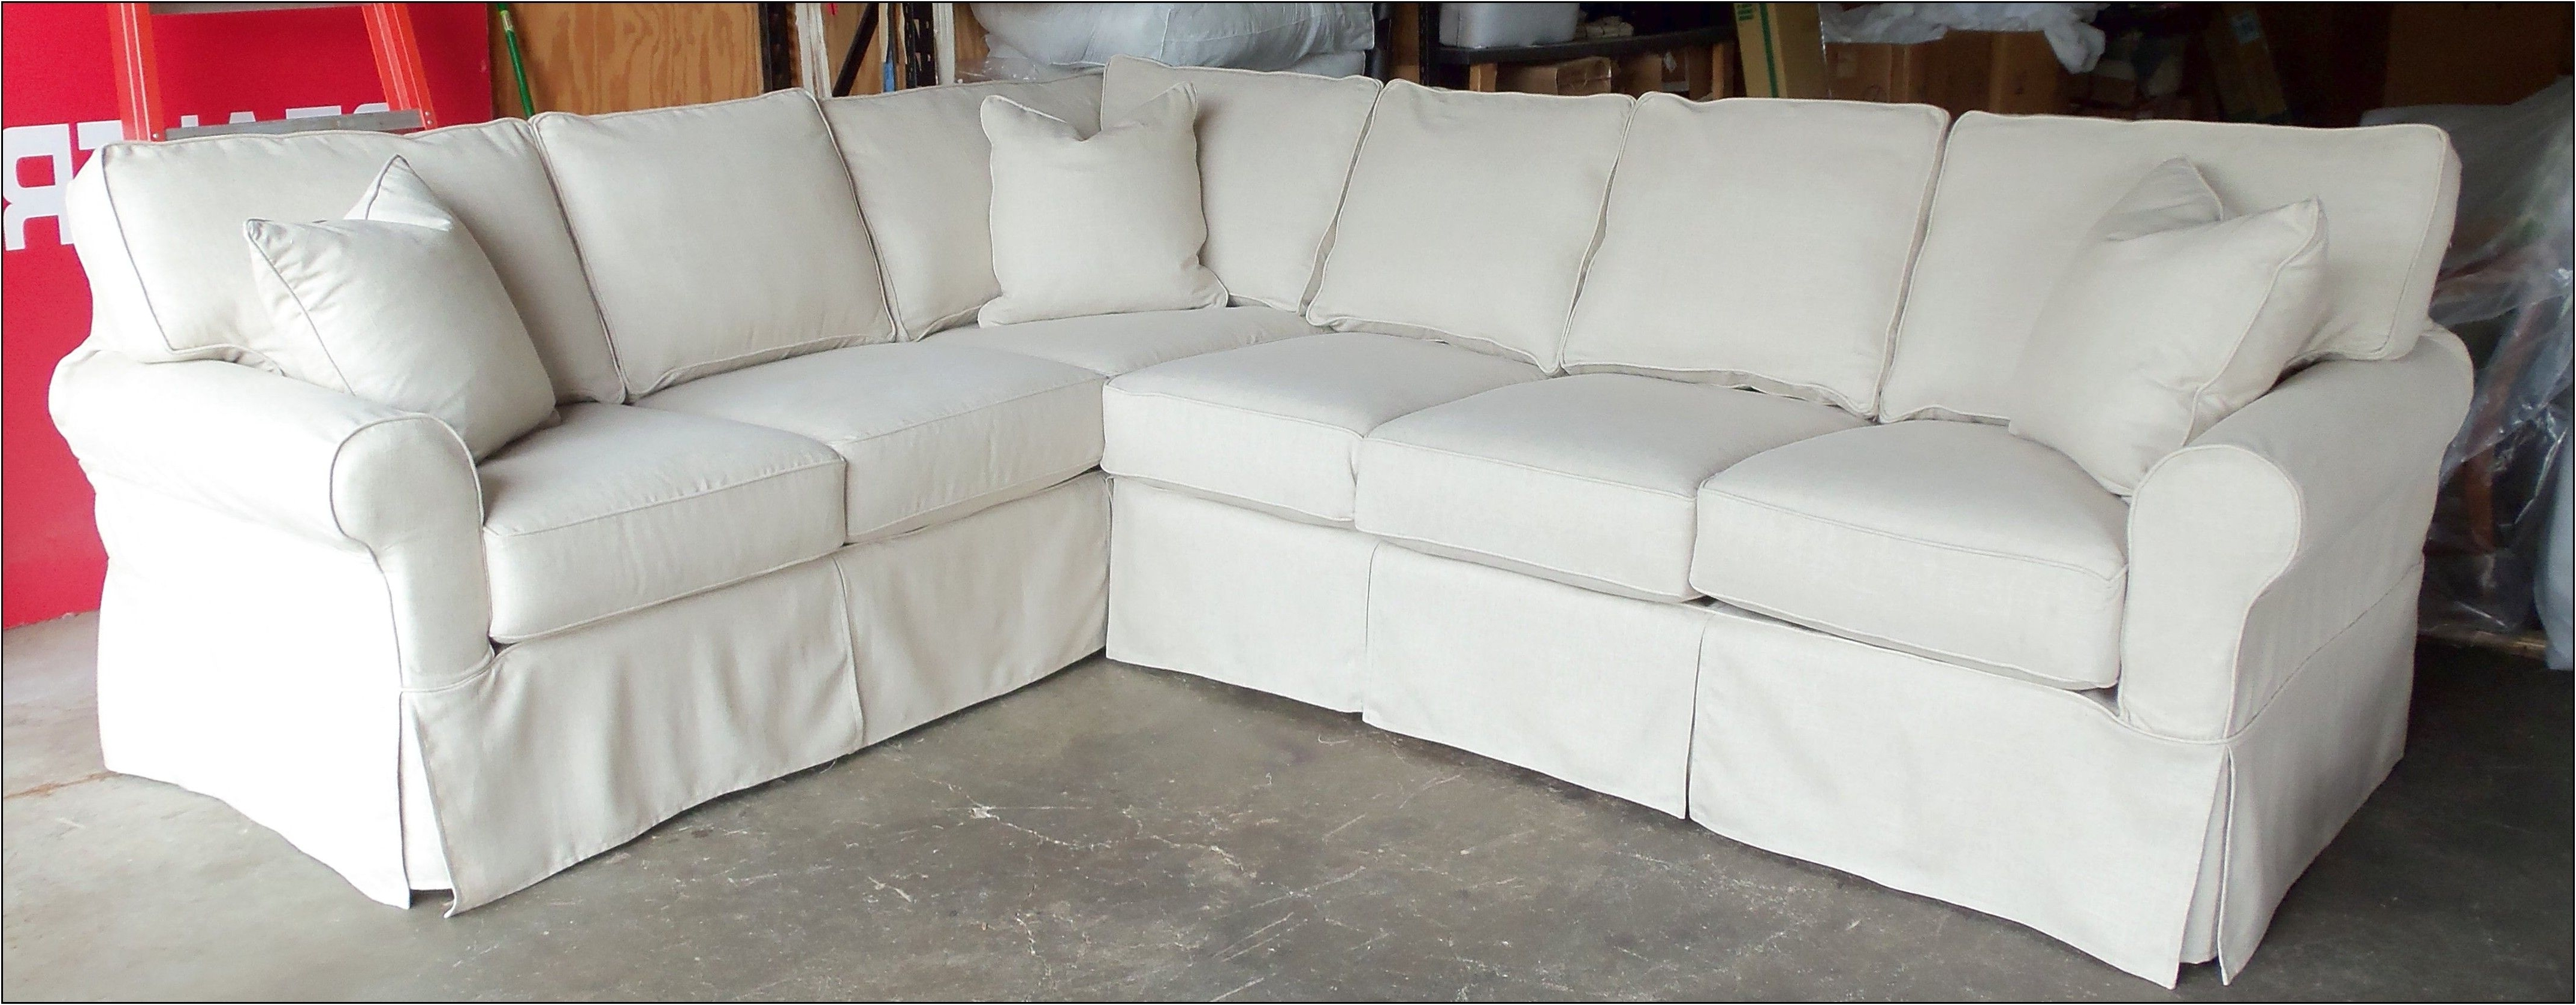 Slipcovers For Sectionals With Chaise Within Recent Cool Sectional Couch Cover , Best Sectional Couch Cover 72 For (View 7 of 15)